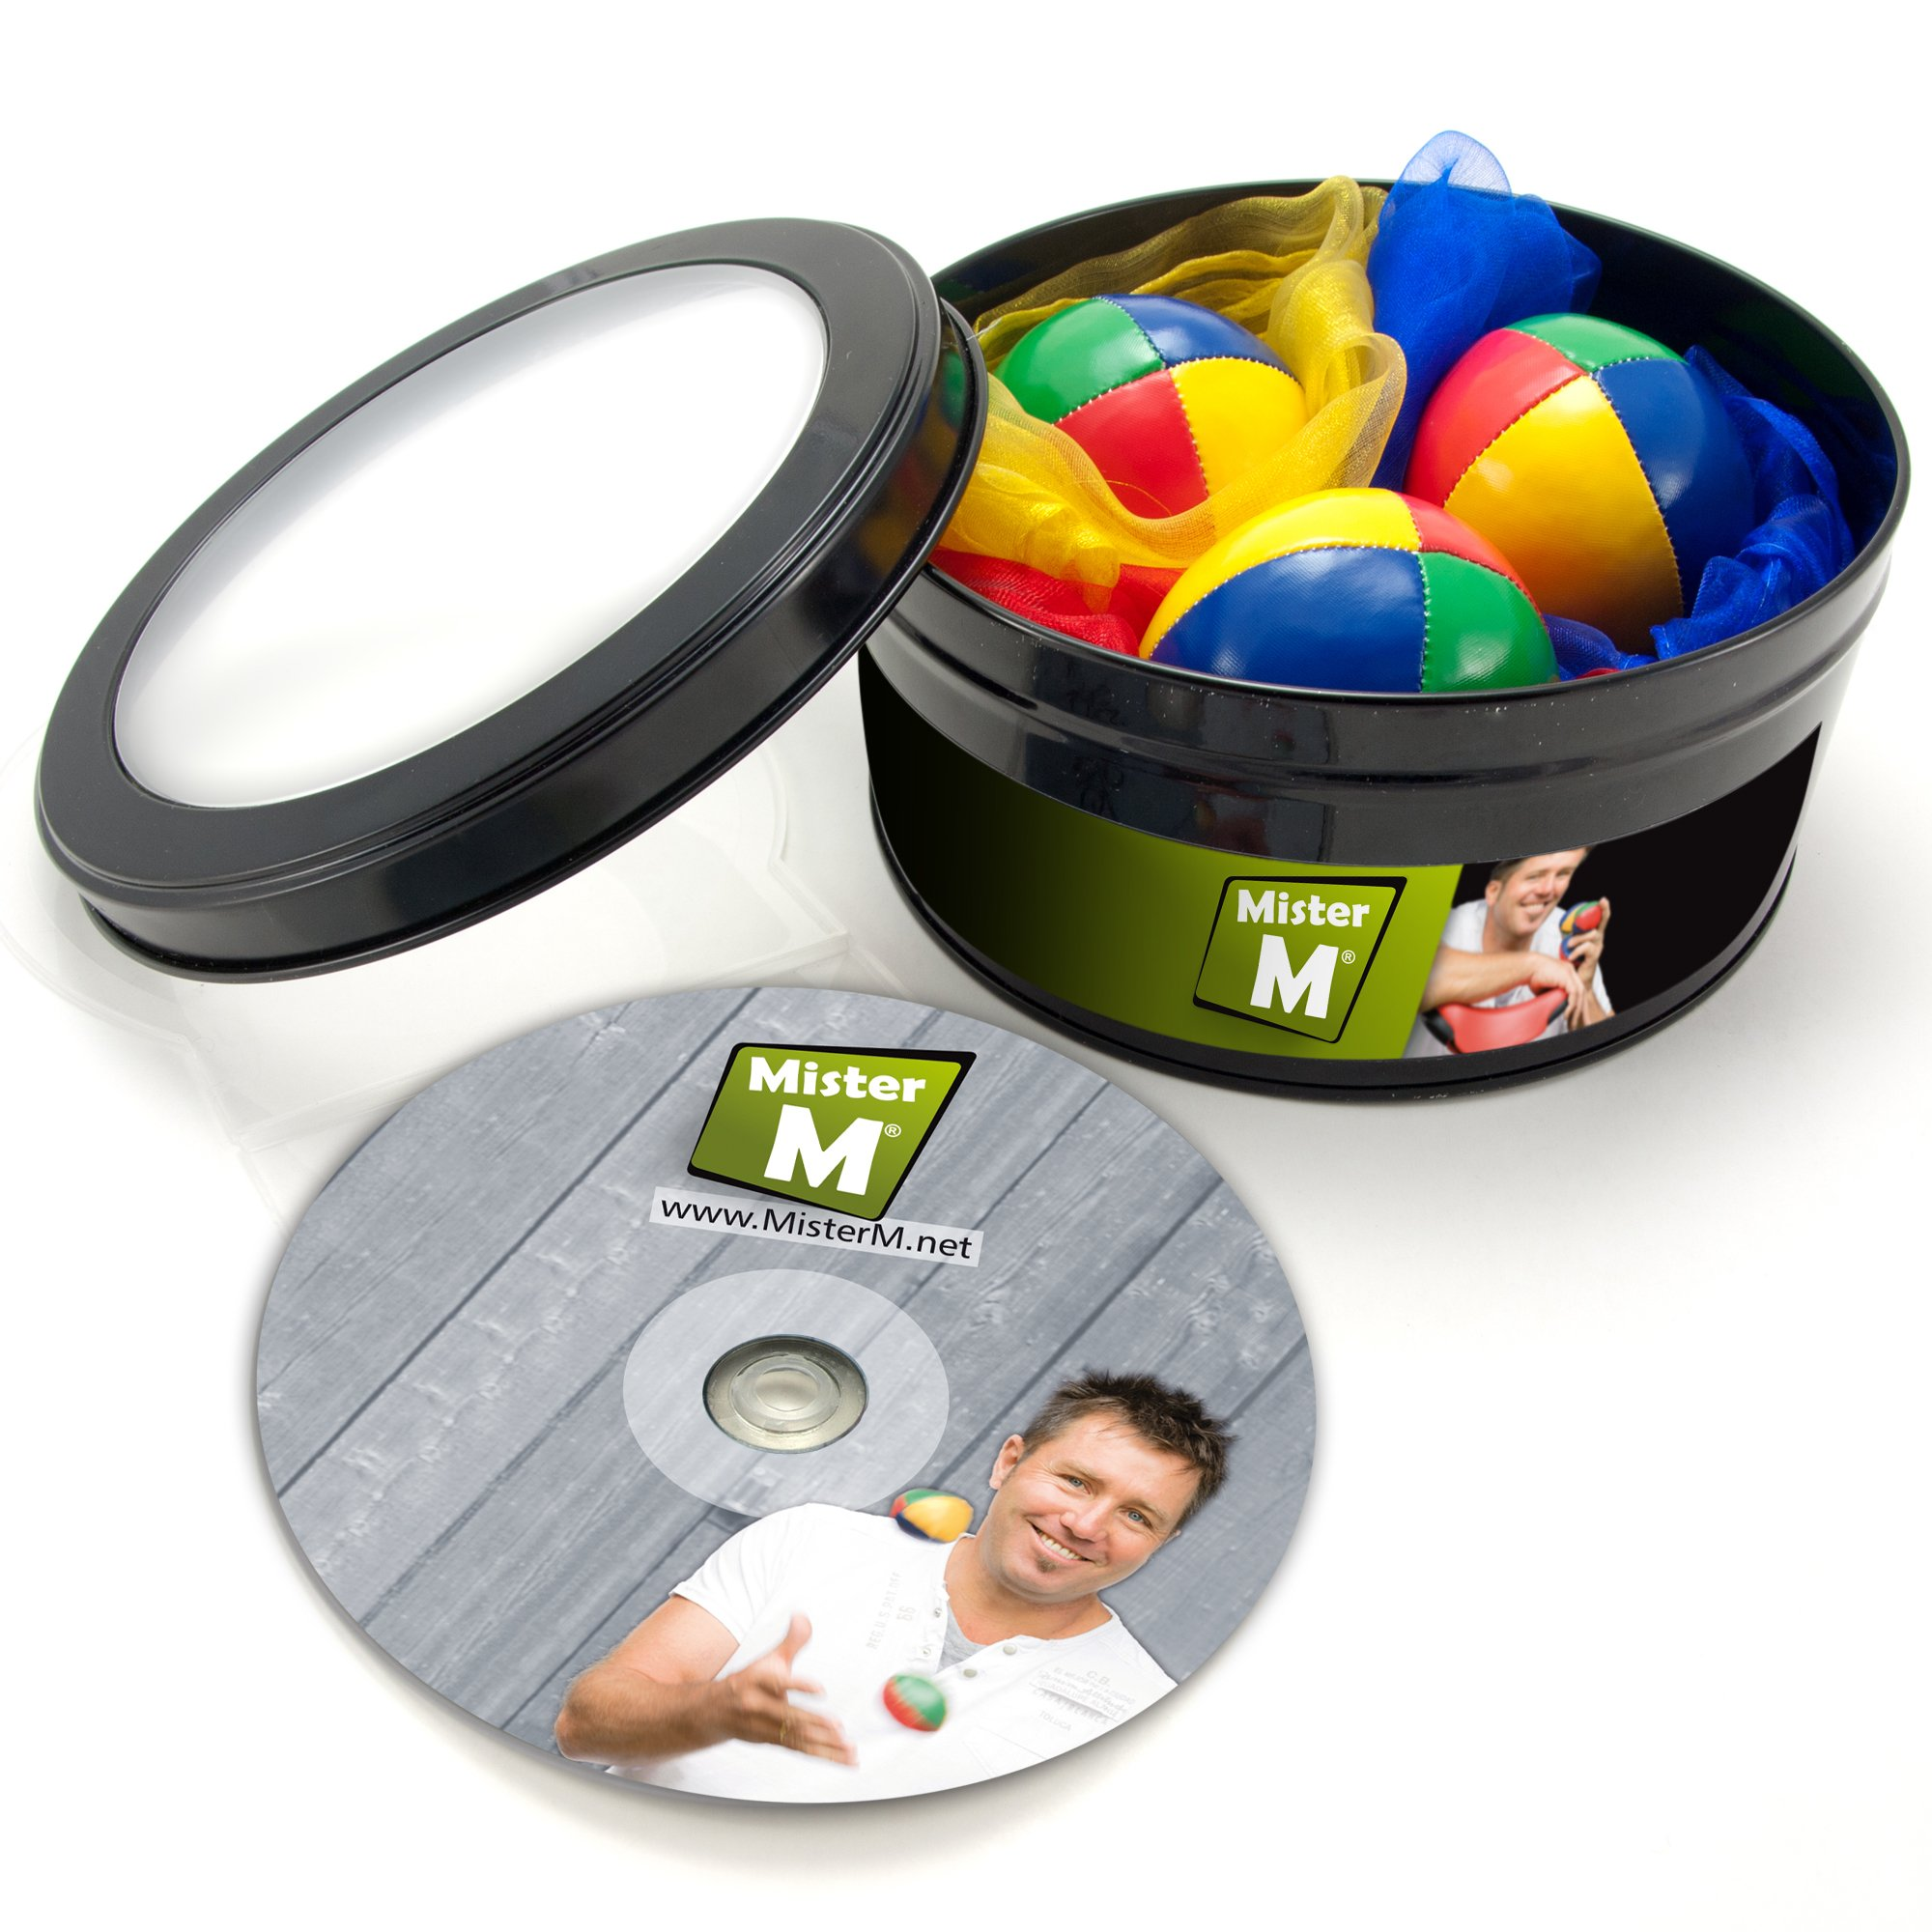 3 Balls + 3 Scarves + an Instructional DVD by MisterM / The Ultimate Juggling Set by Mister M